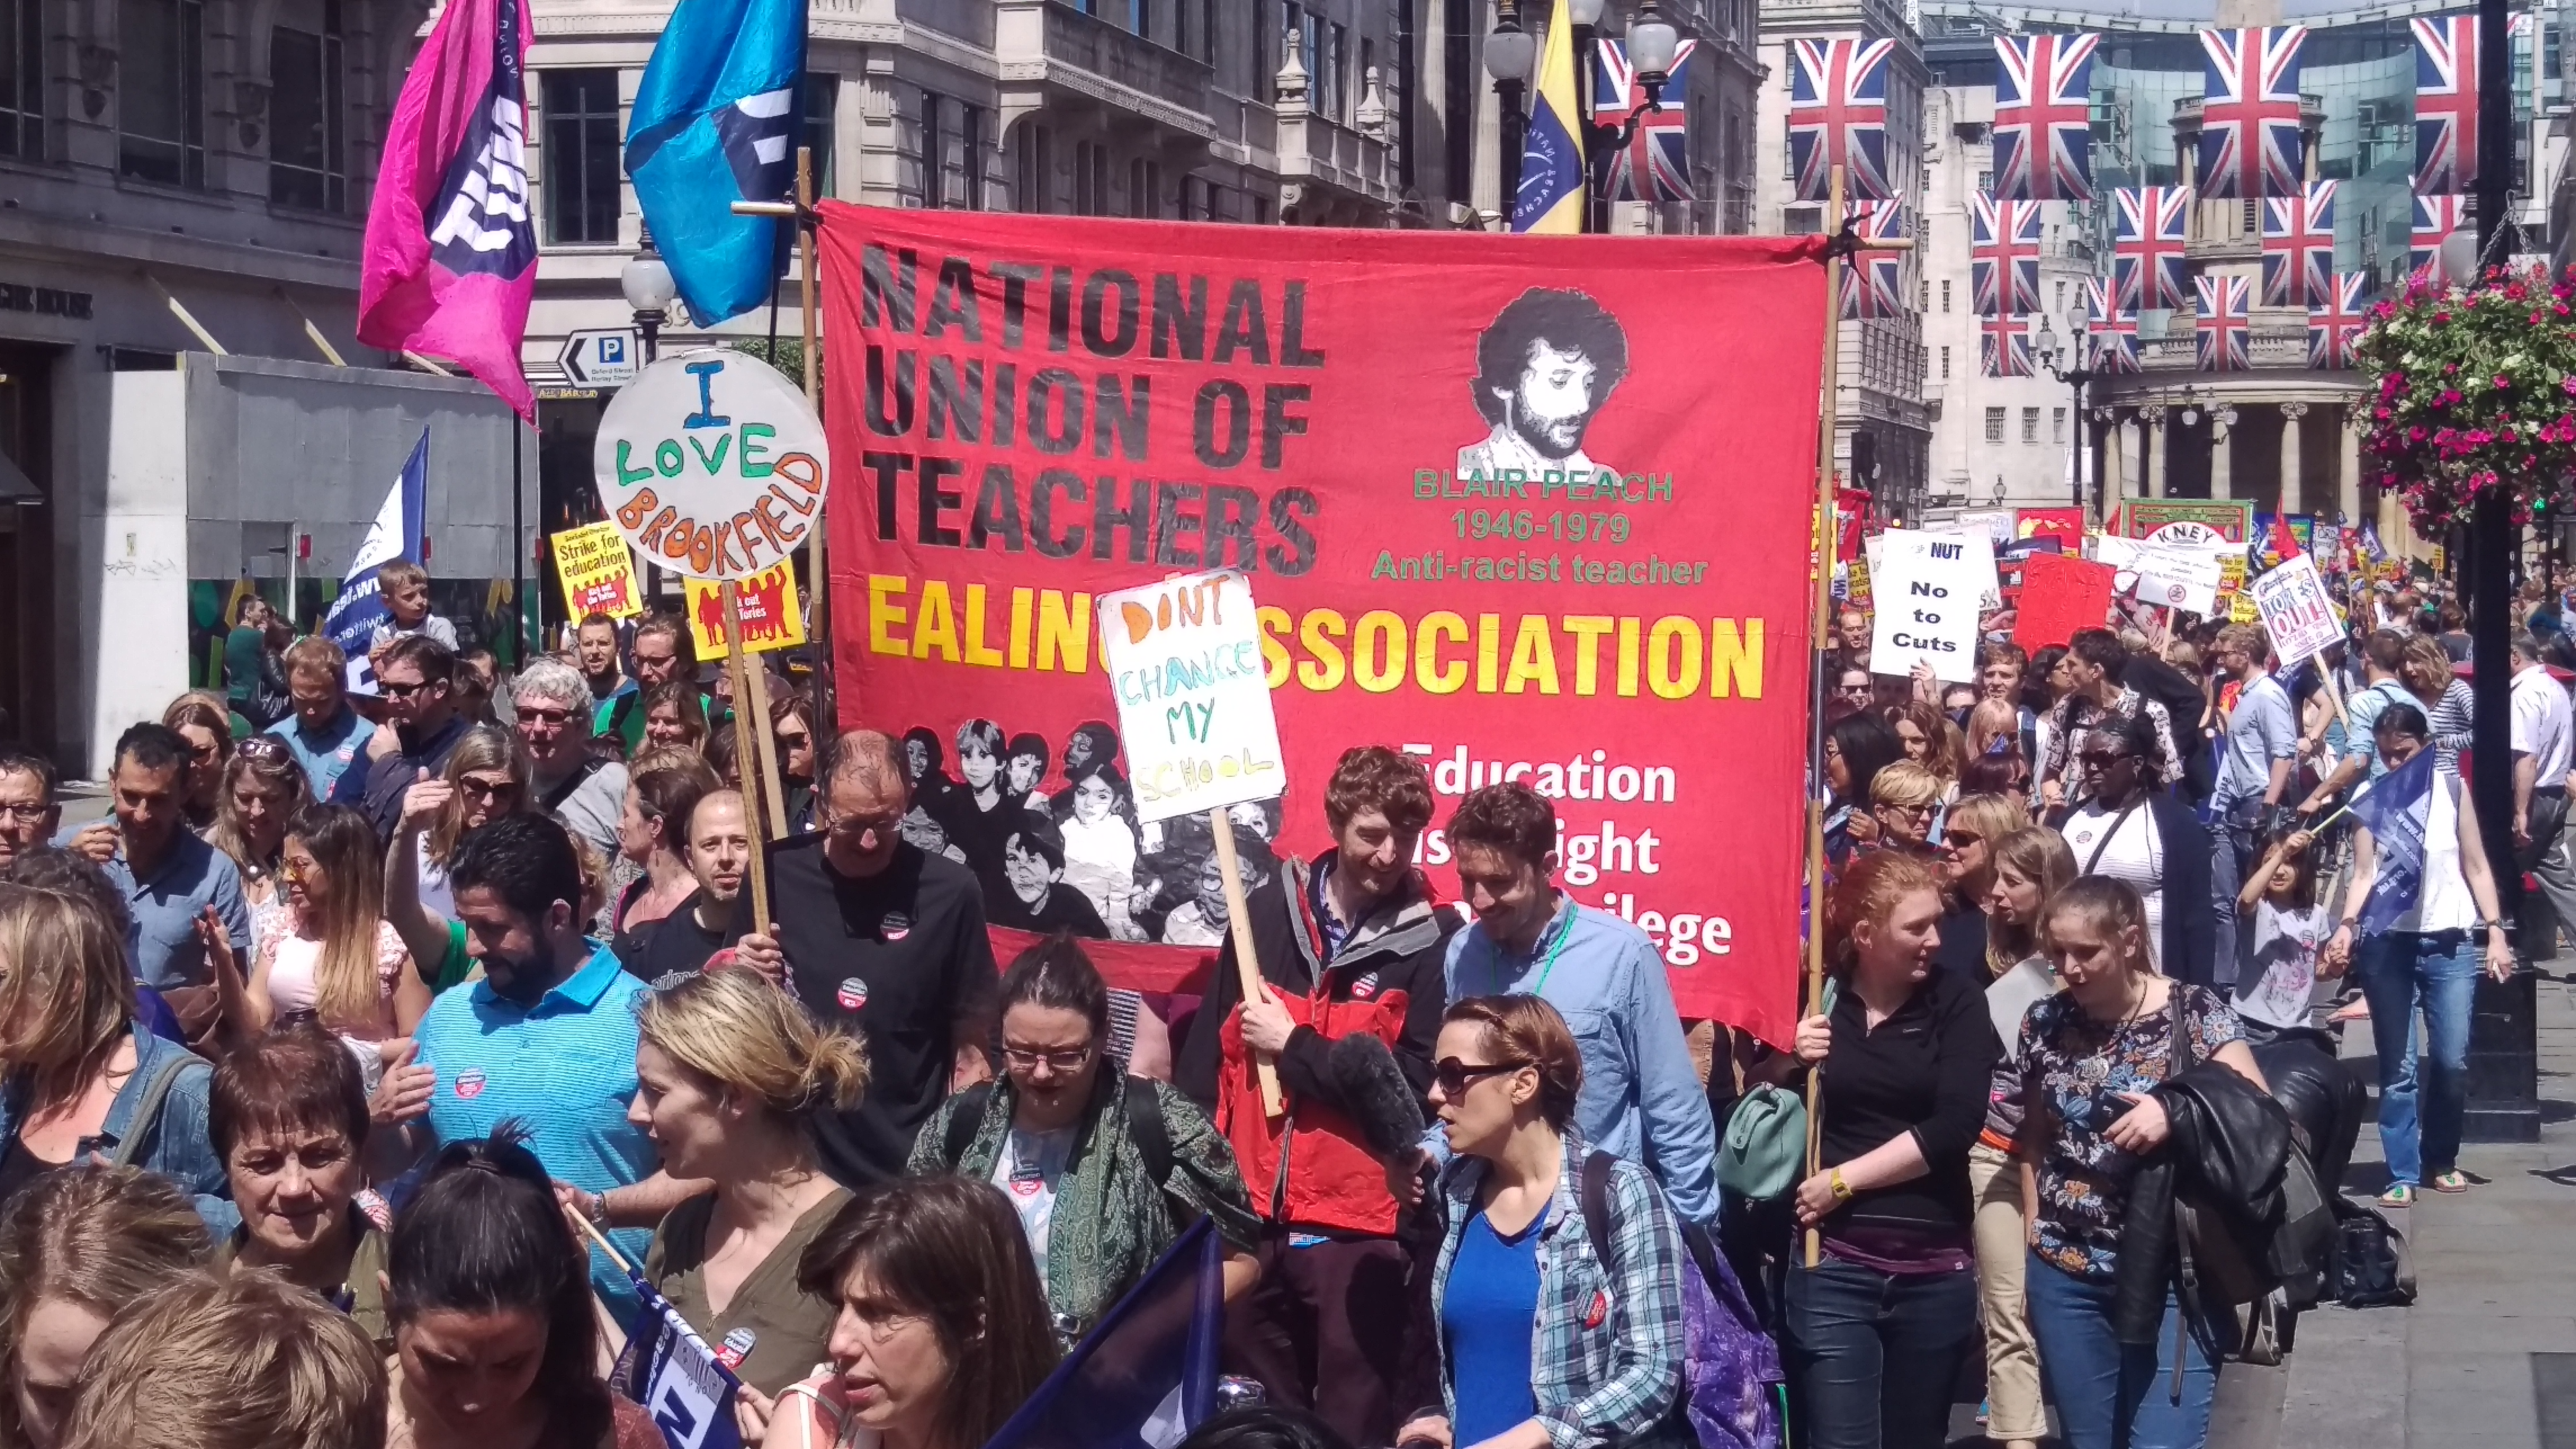 On the London march